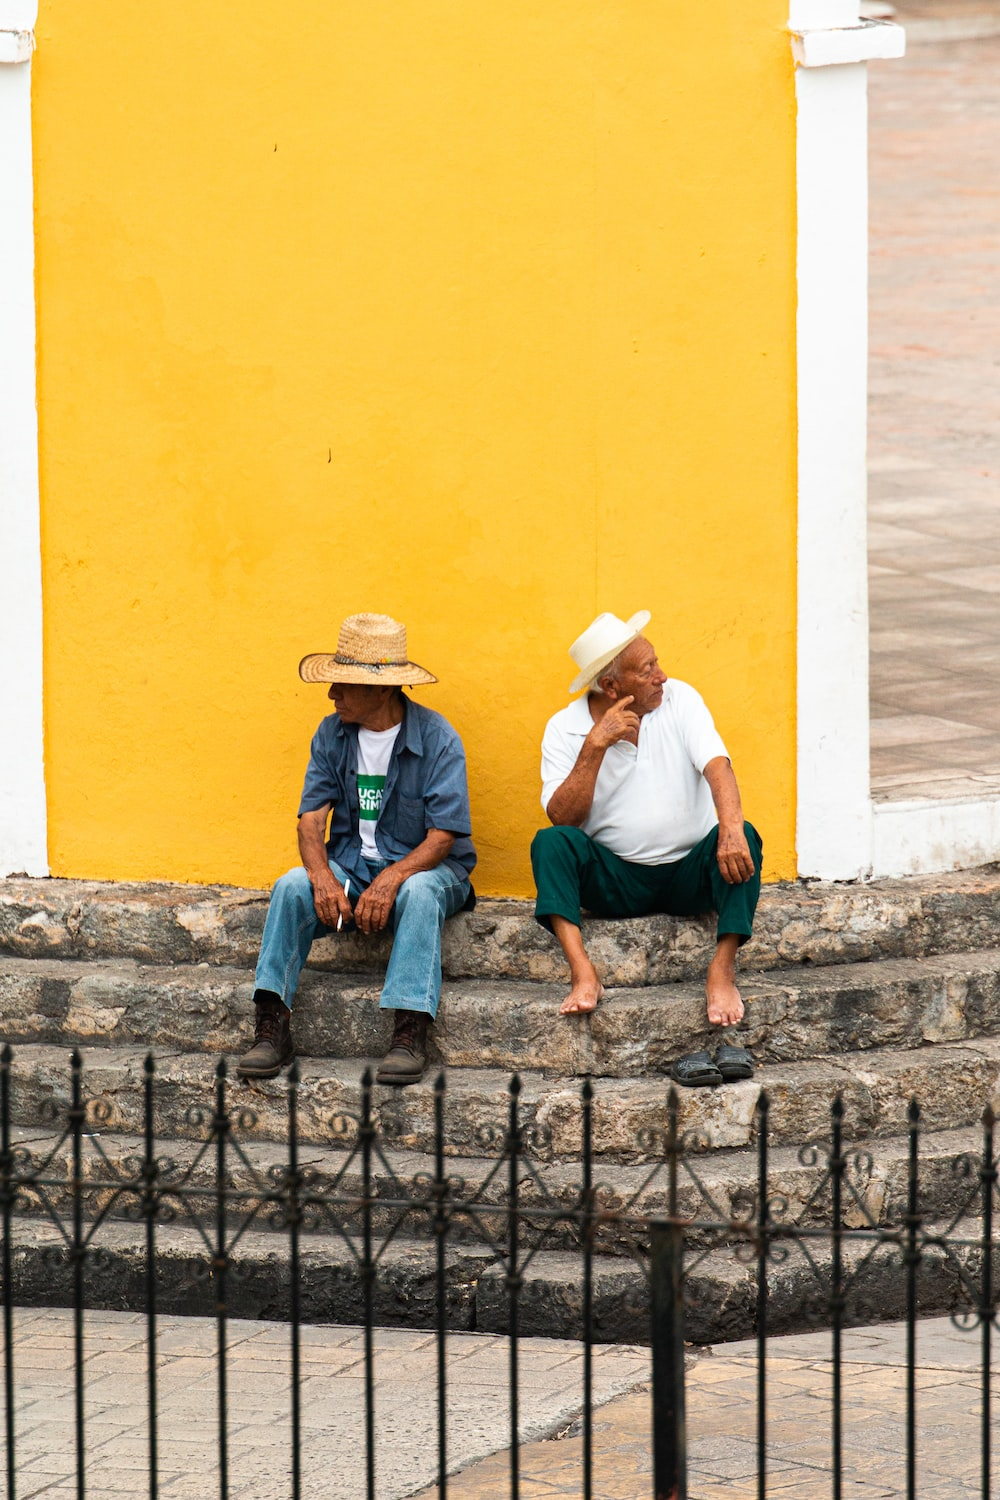 2 men sitting on concrete stairs